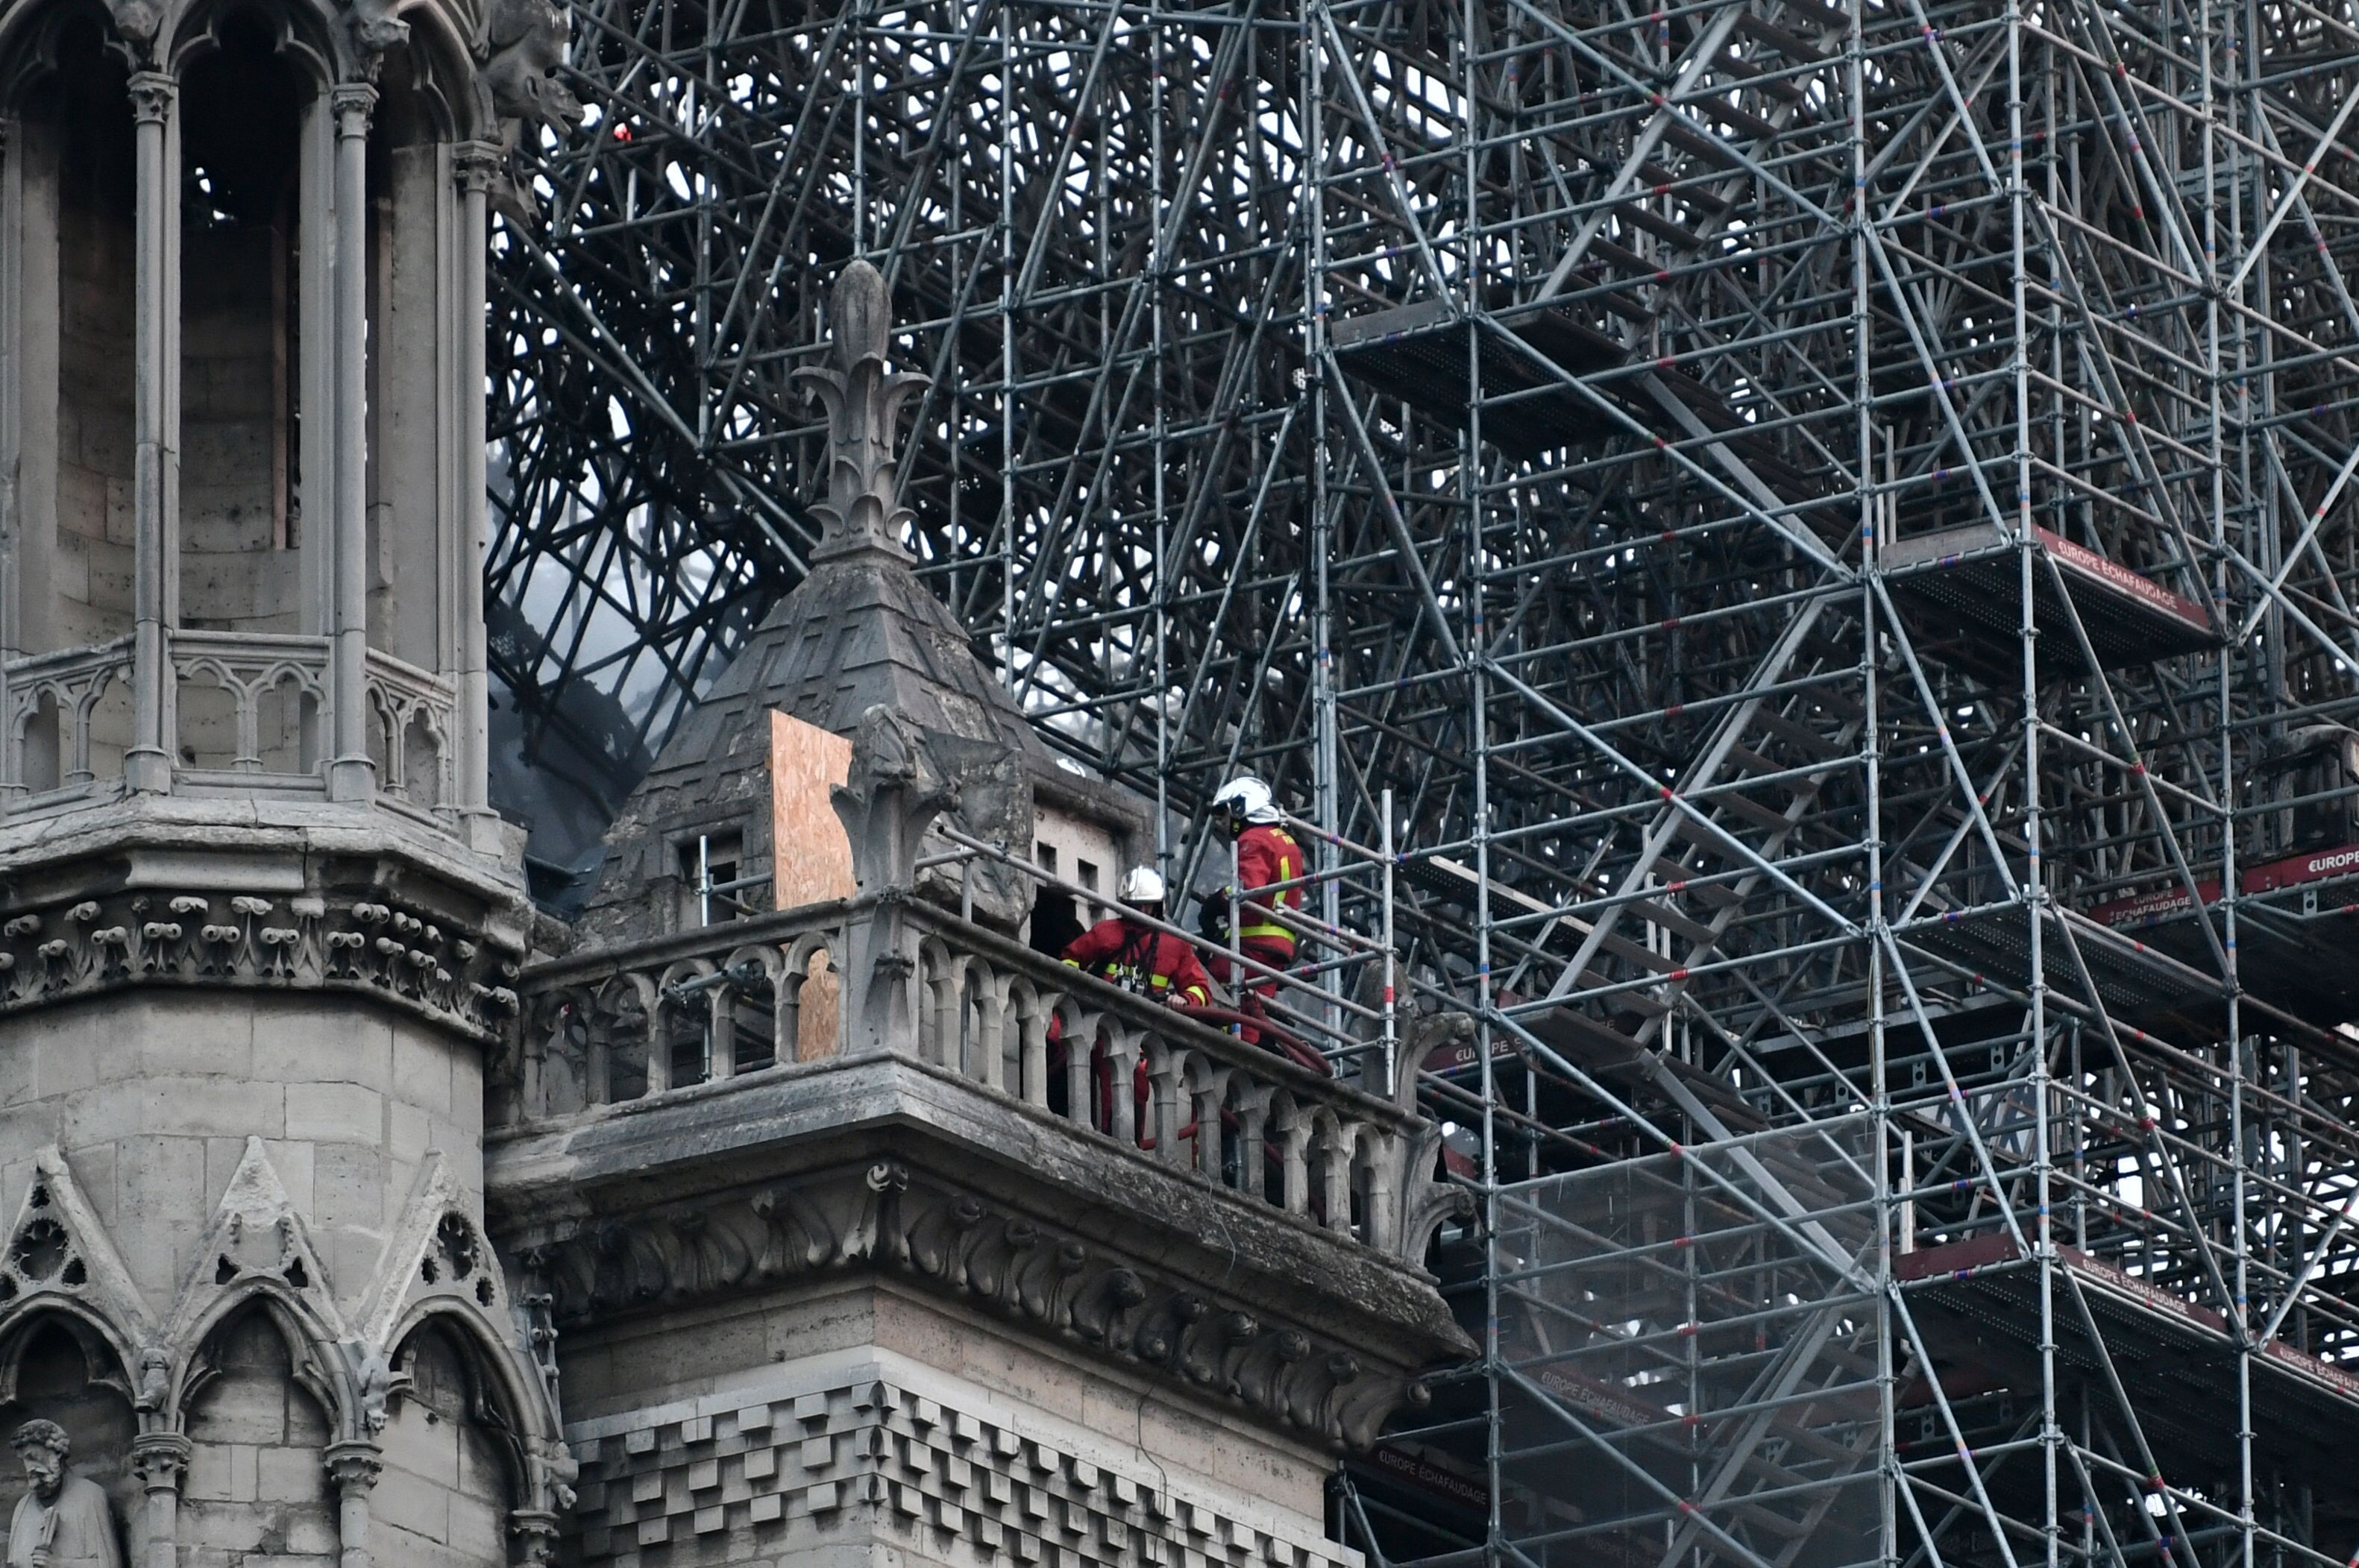 """Firefighters continue to work to extinguish the fire at Notre Dame Cathedral. The fire is under control but there are """"still outbreaks,"""" a Ministry of the Interior spokesman said Tuesday morning."""